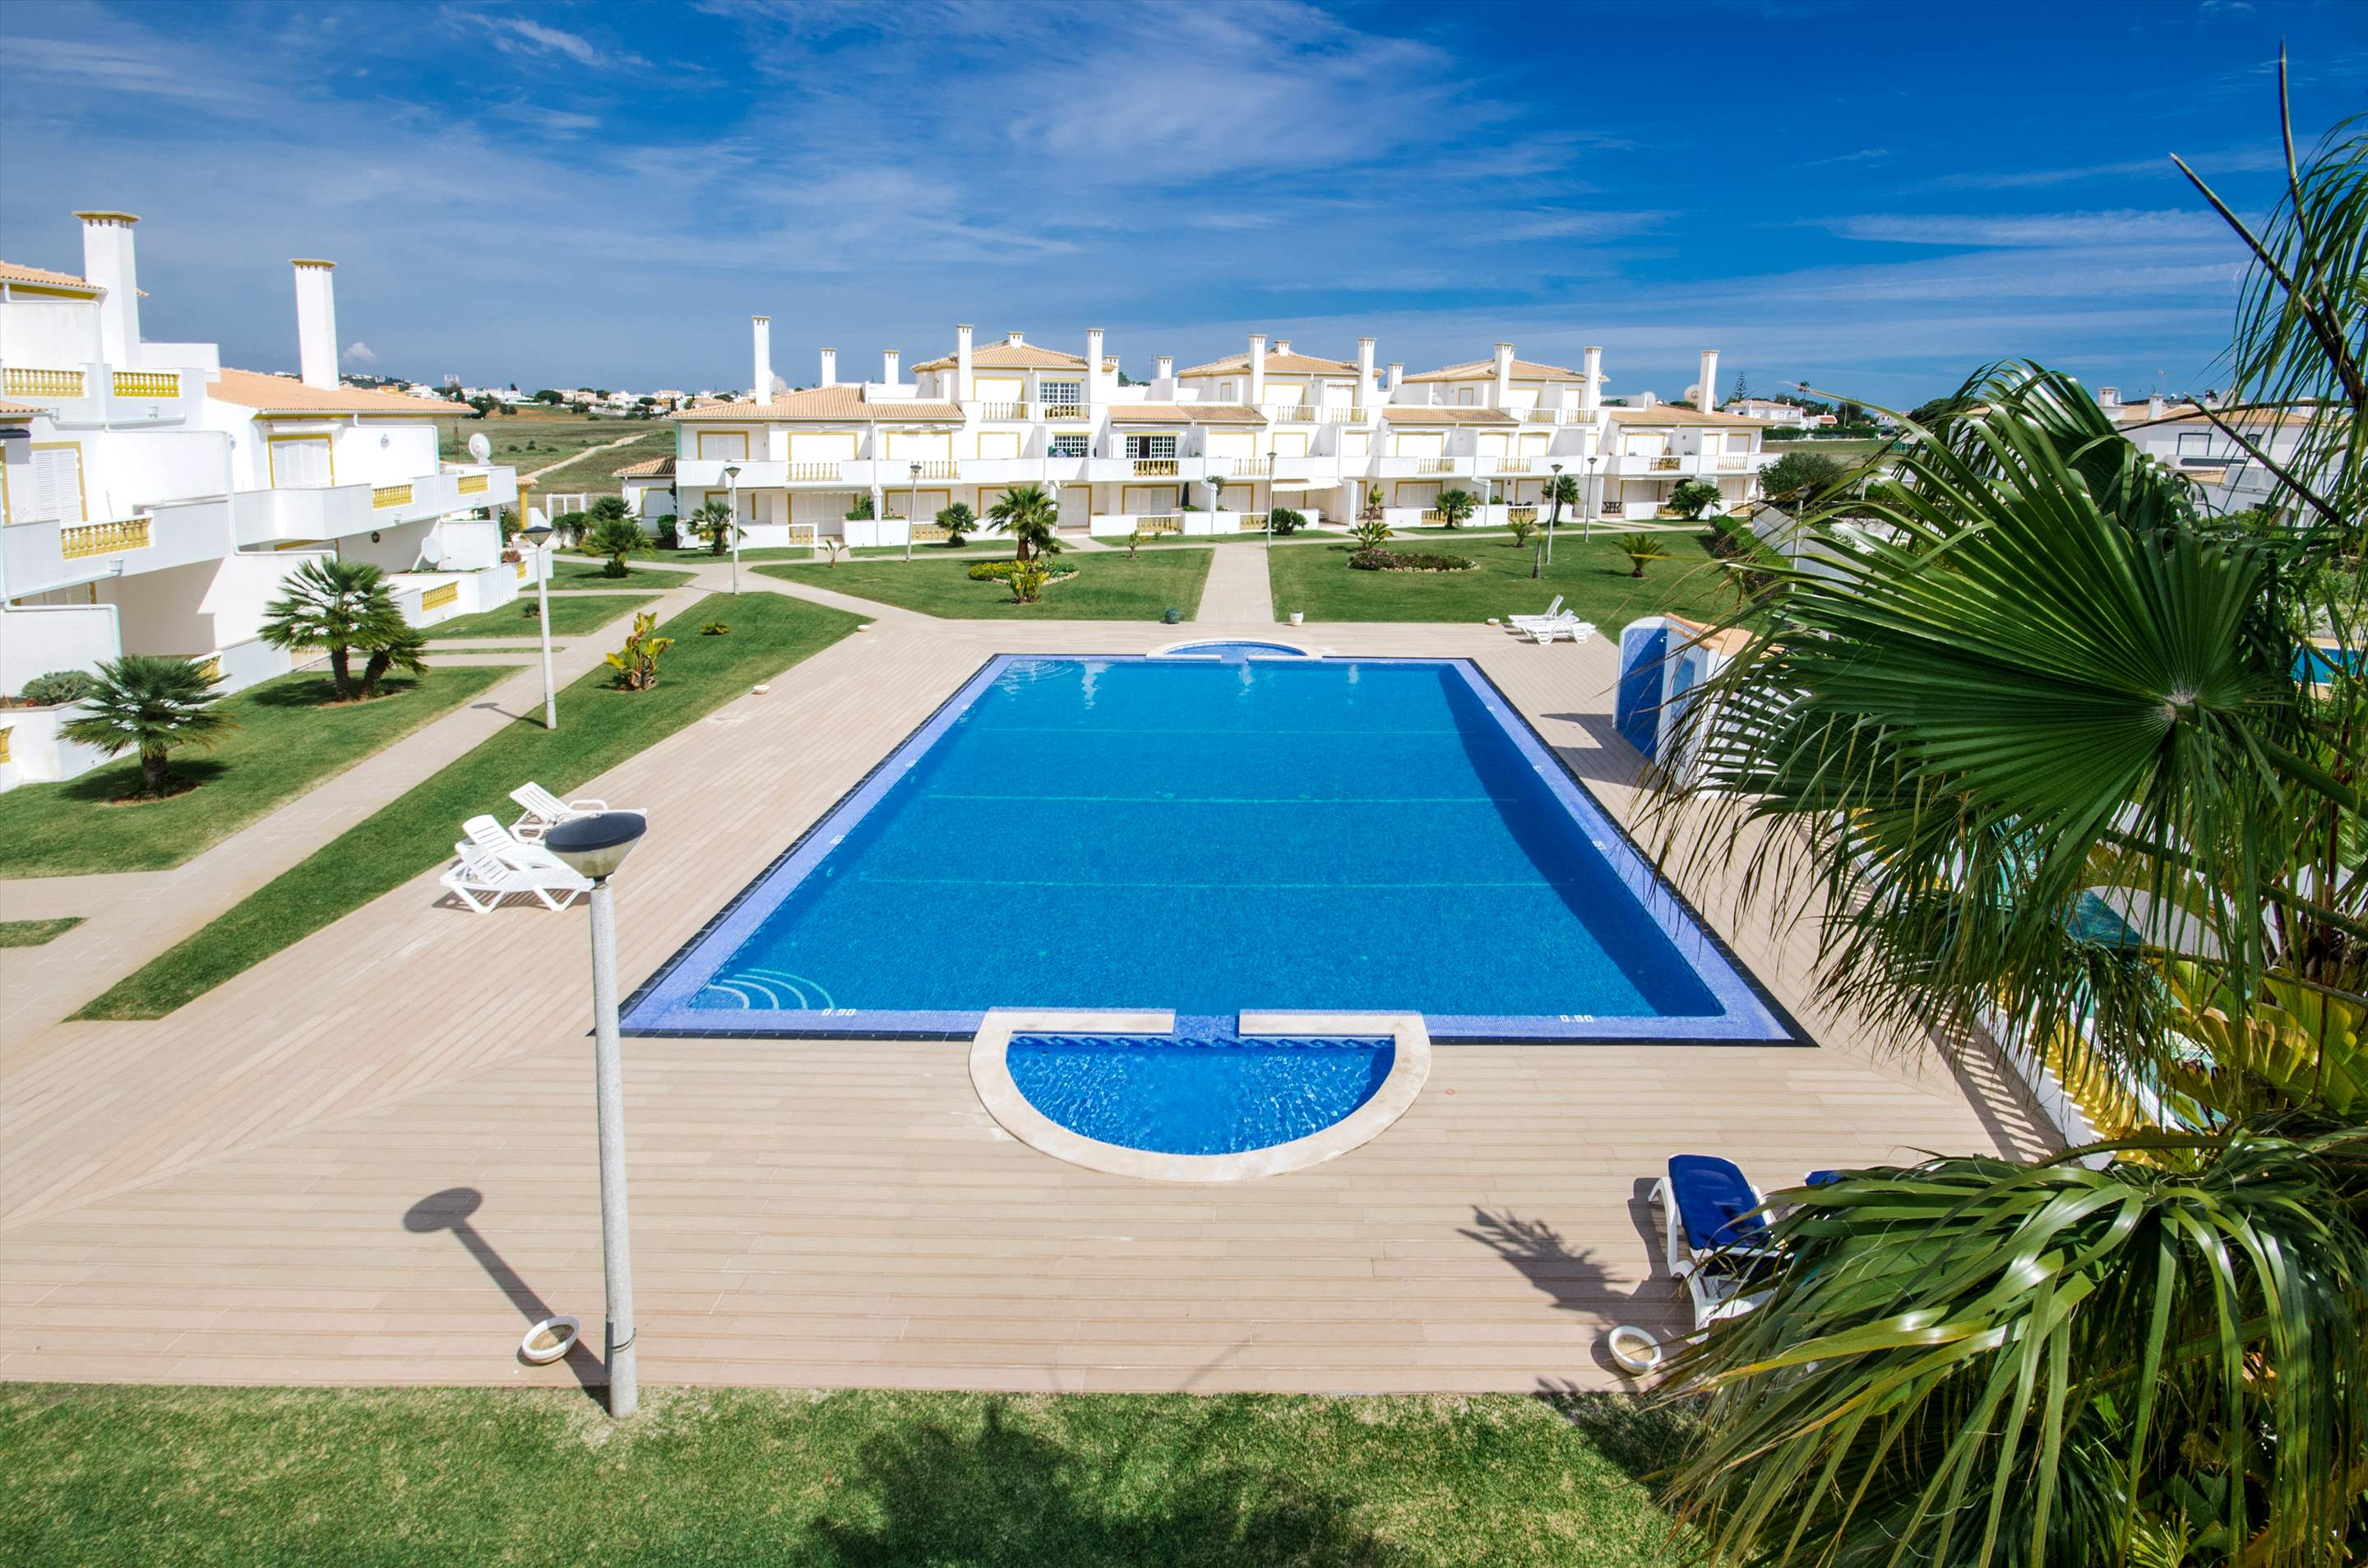 Apt O Monte, For Up to 4 Persons, 2 bedroom apartment in Gale, Vale da Parra and Guia, Algarve Photo #16